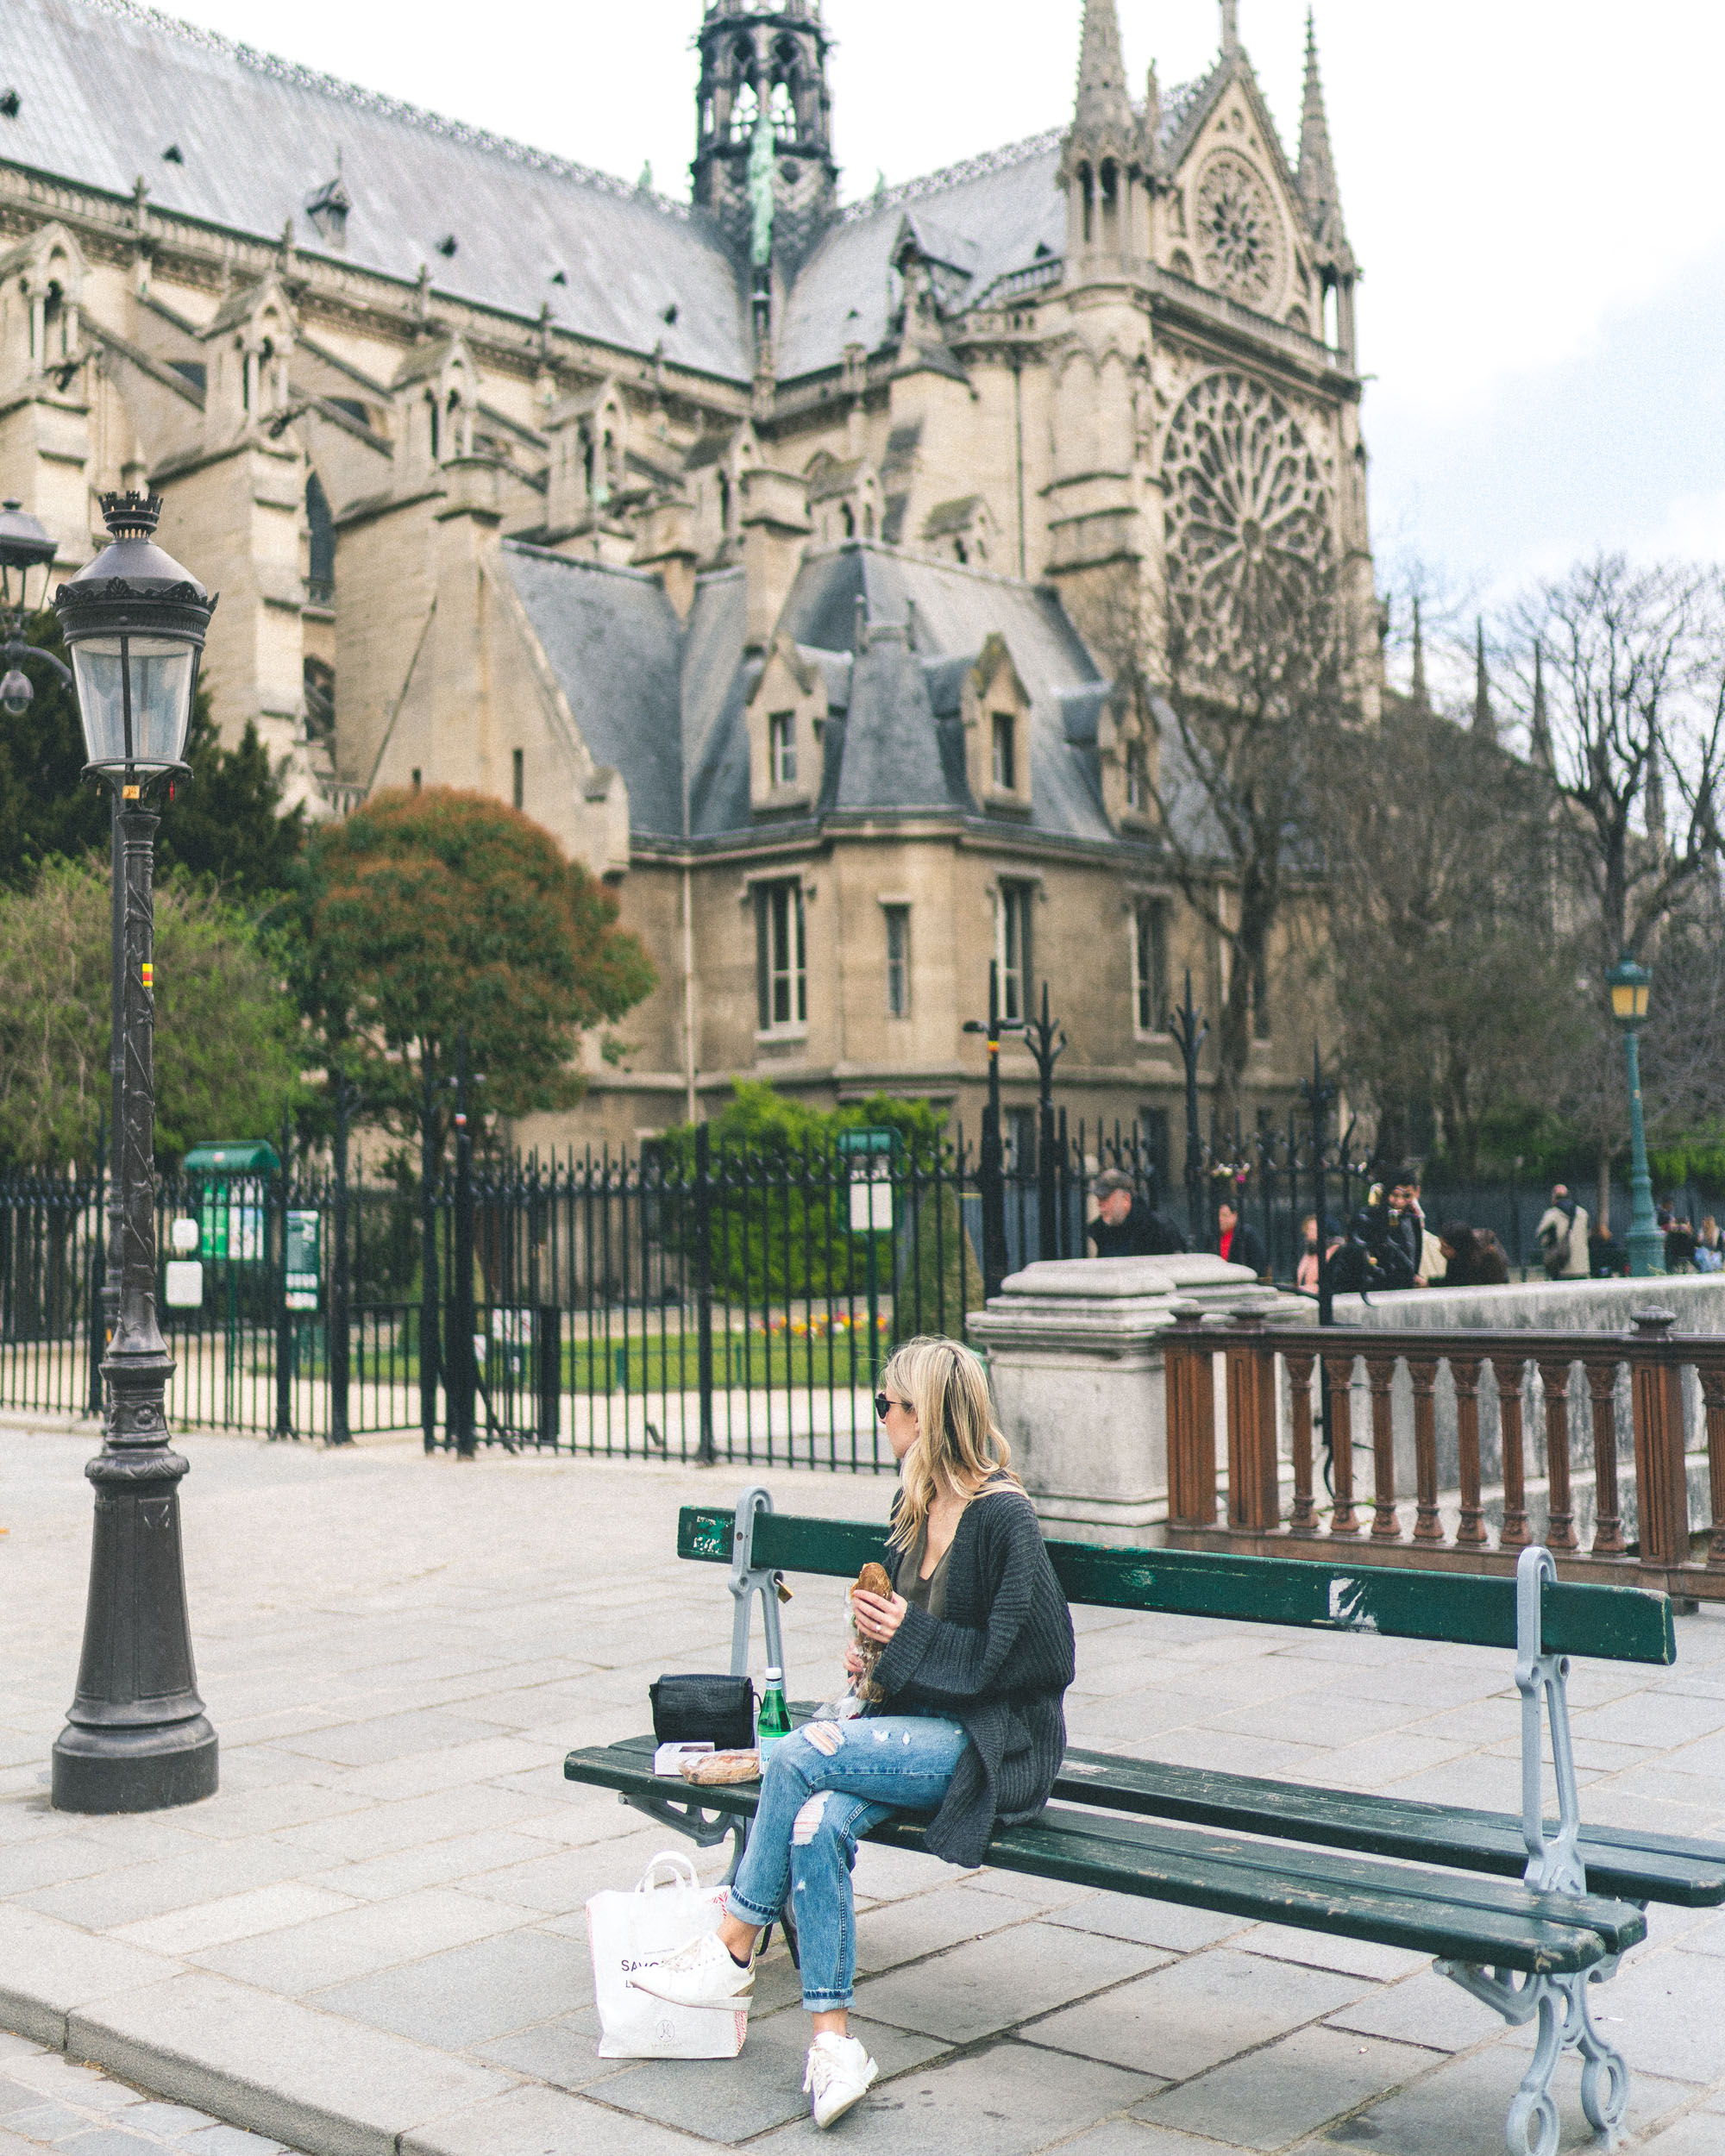 Best parisian bakeries to go - Notre Dame de Paris bench - Complete Paris Travel Guide